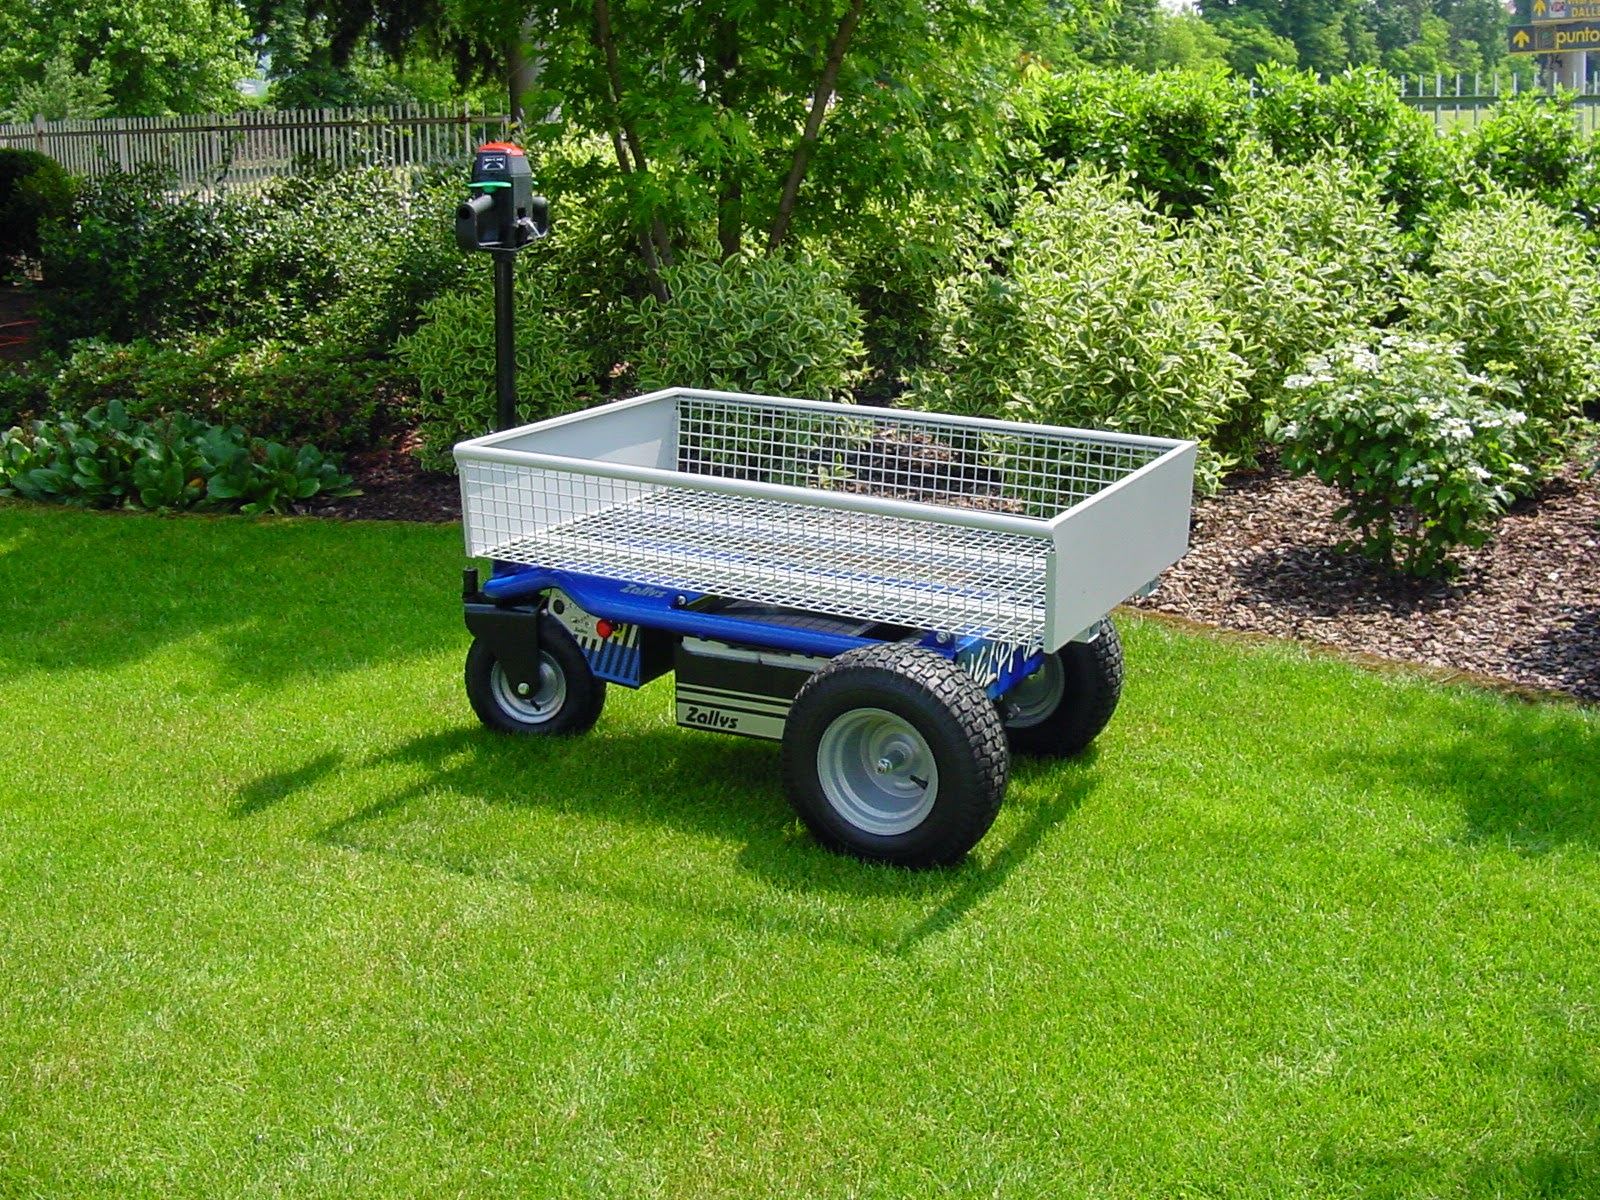 Electric Flatbed Carts Zallys Made In Italy Electric